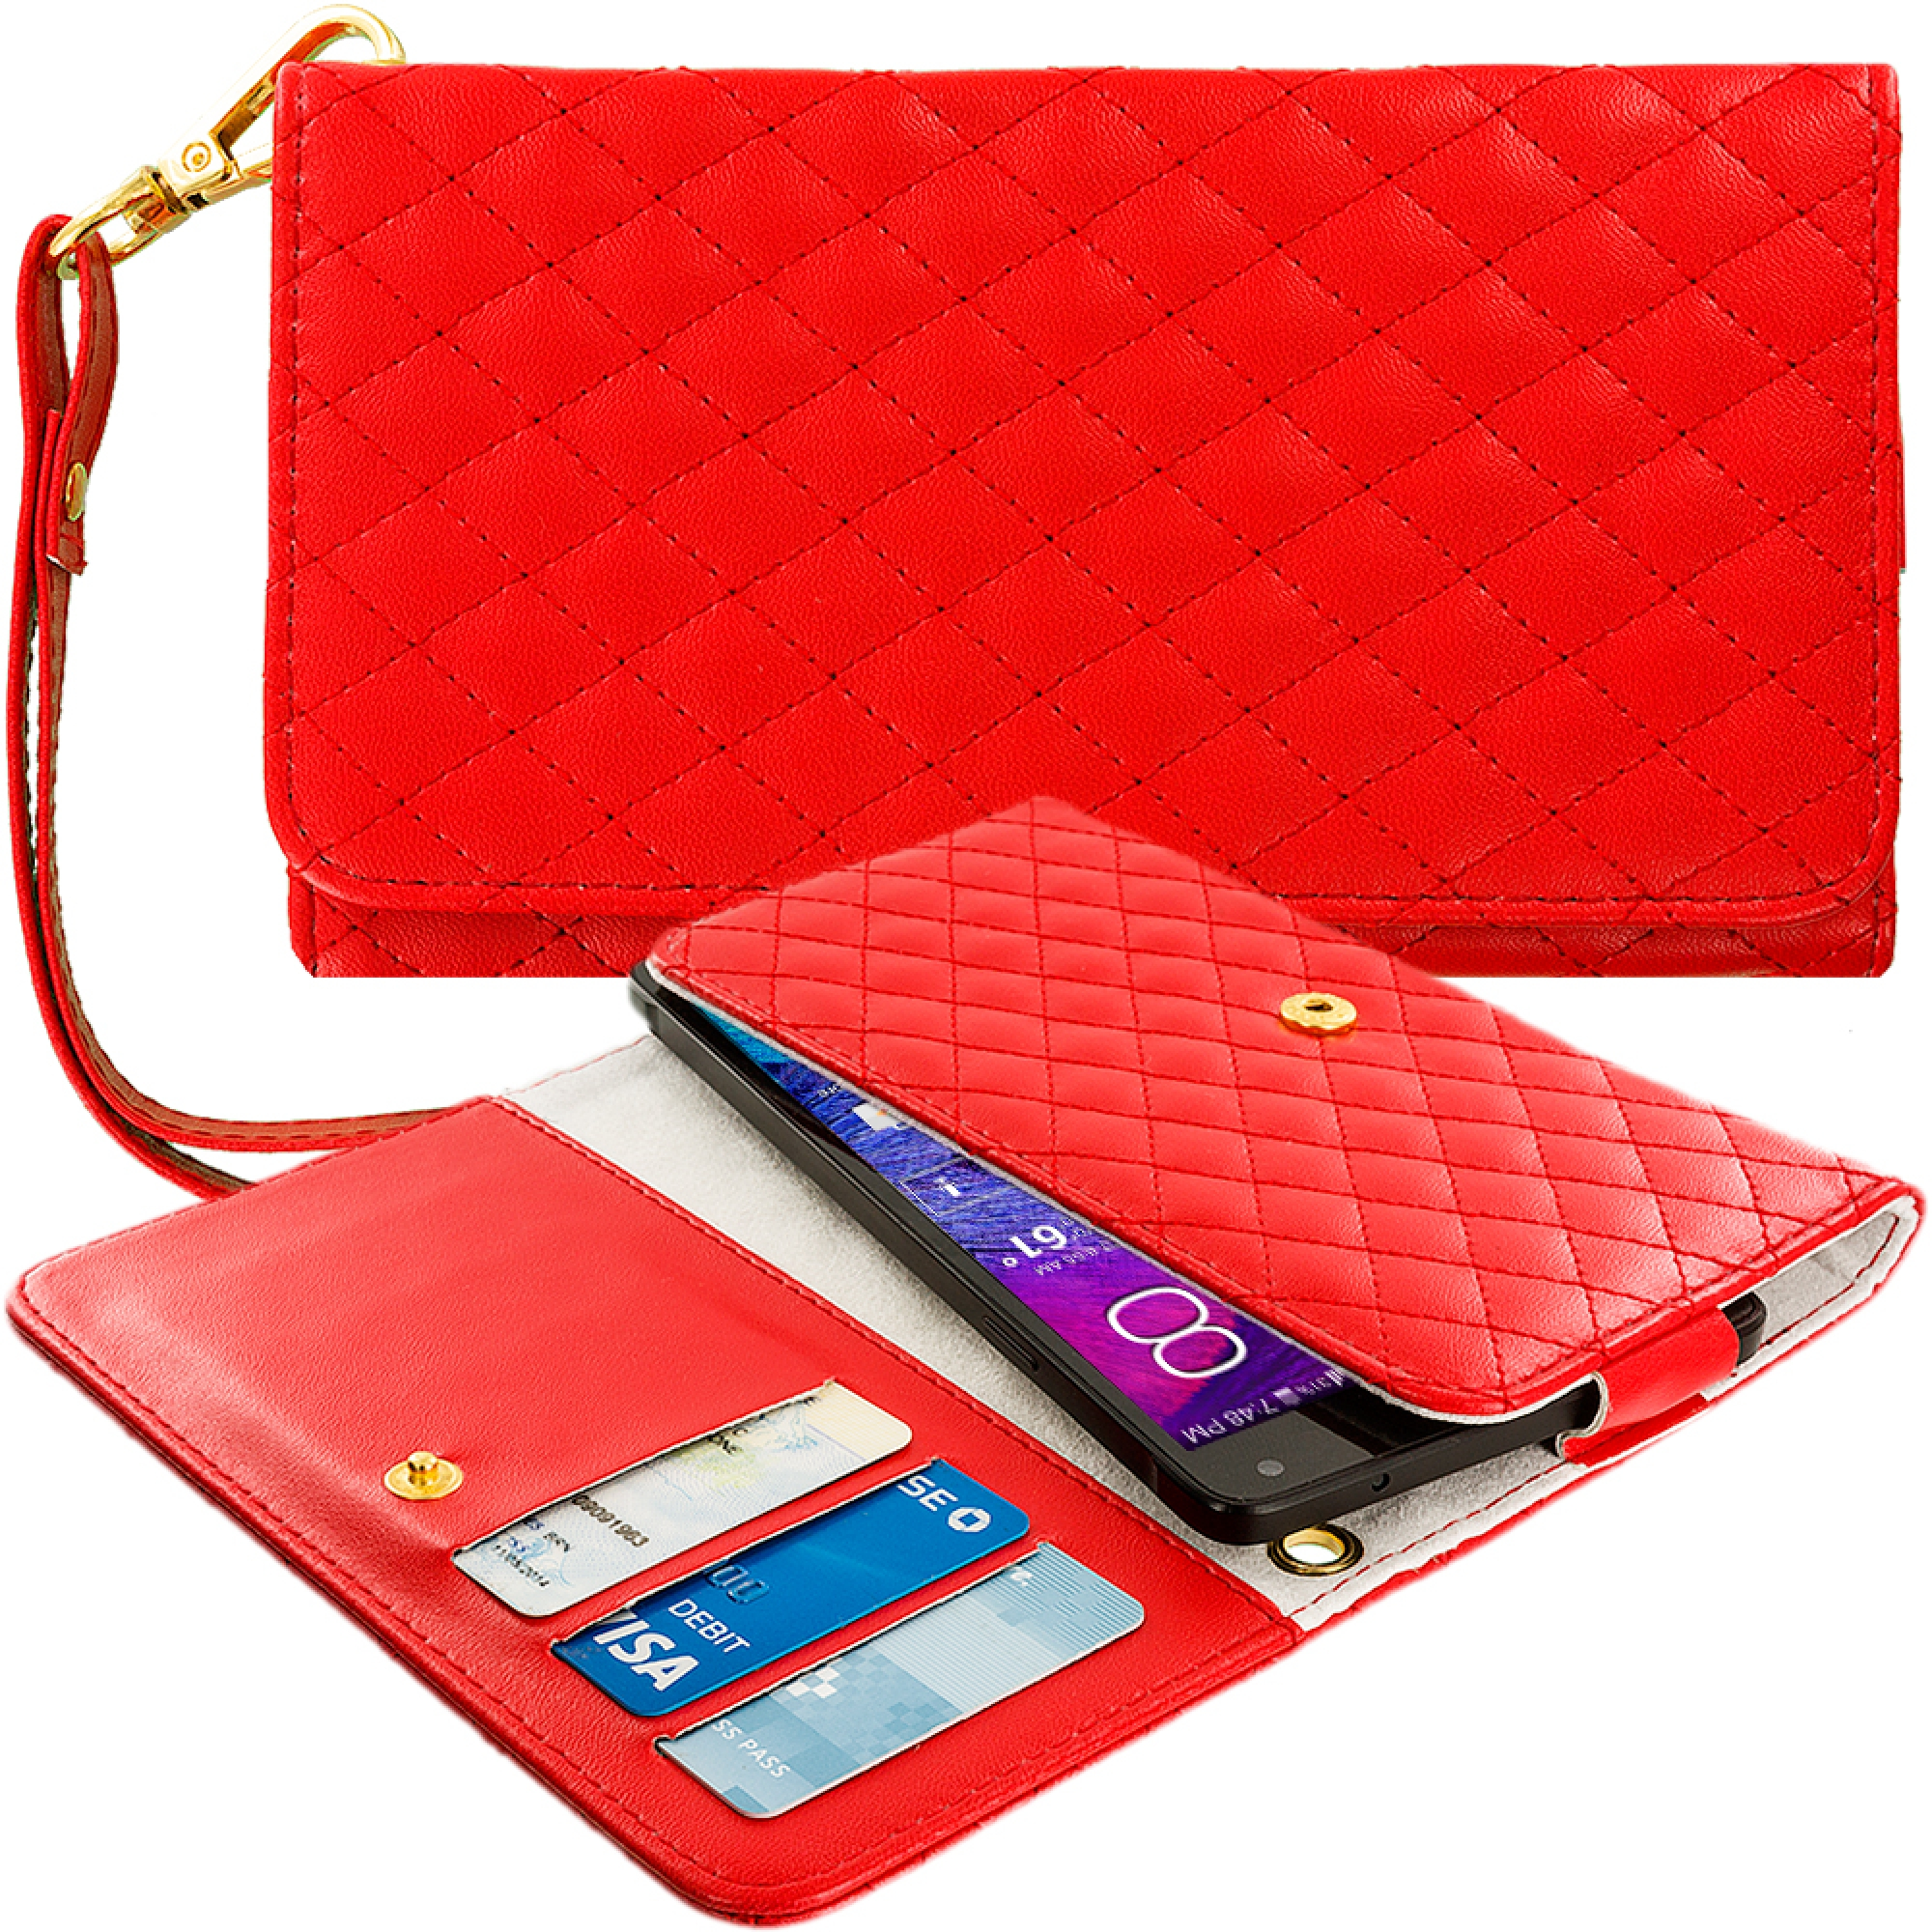 Luxury Flip Wallet Leather Design Case Cover Holder Pouch for Cell Phones